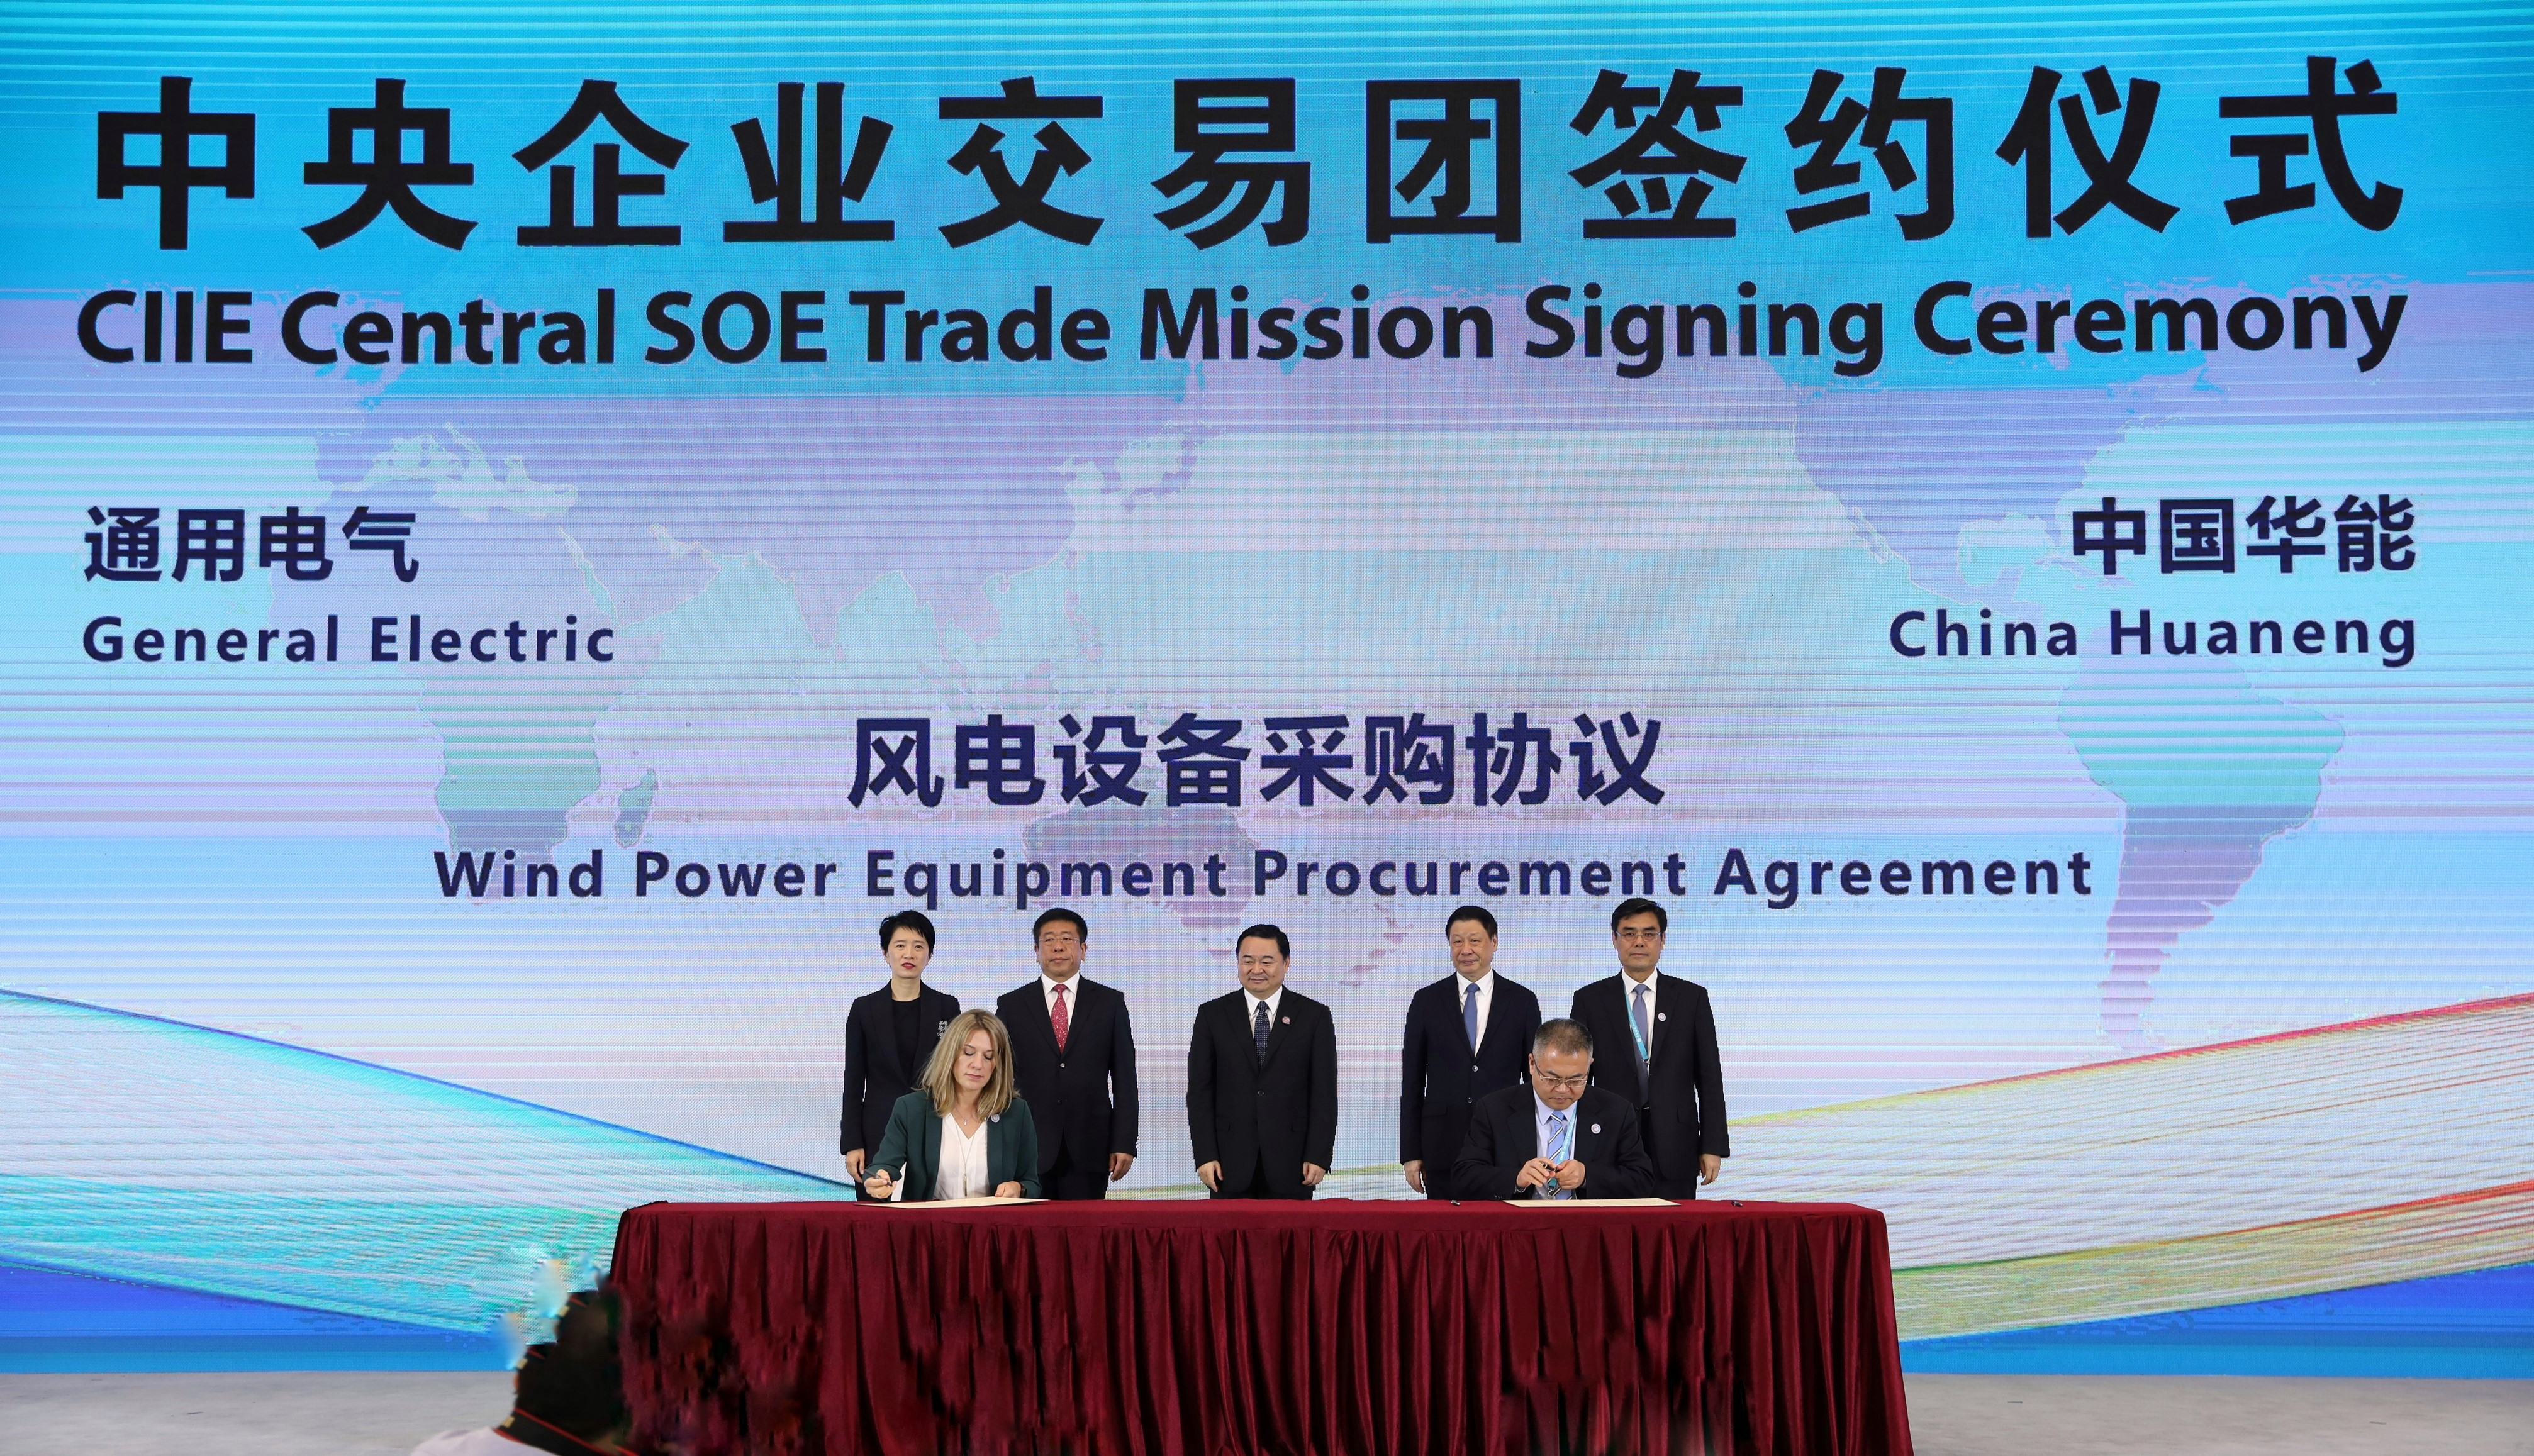 GE Renewable Energy ontvangt megaorder voor onshore windpark in China